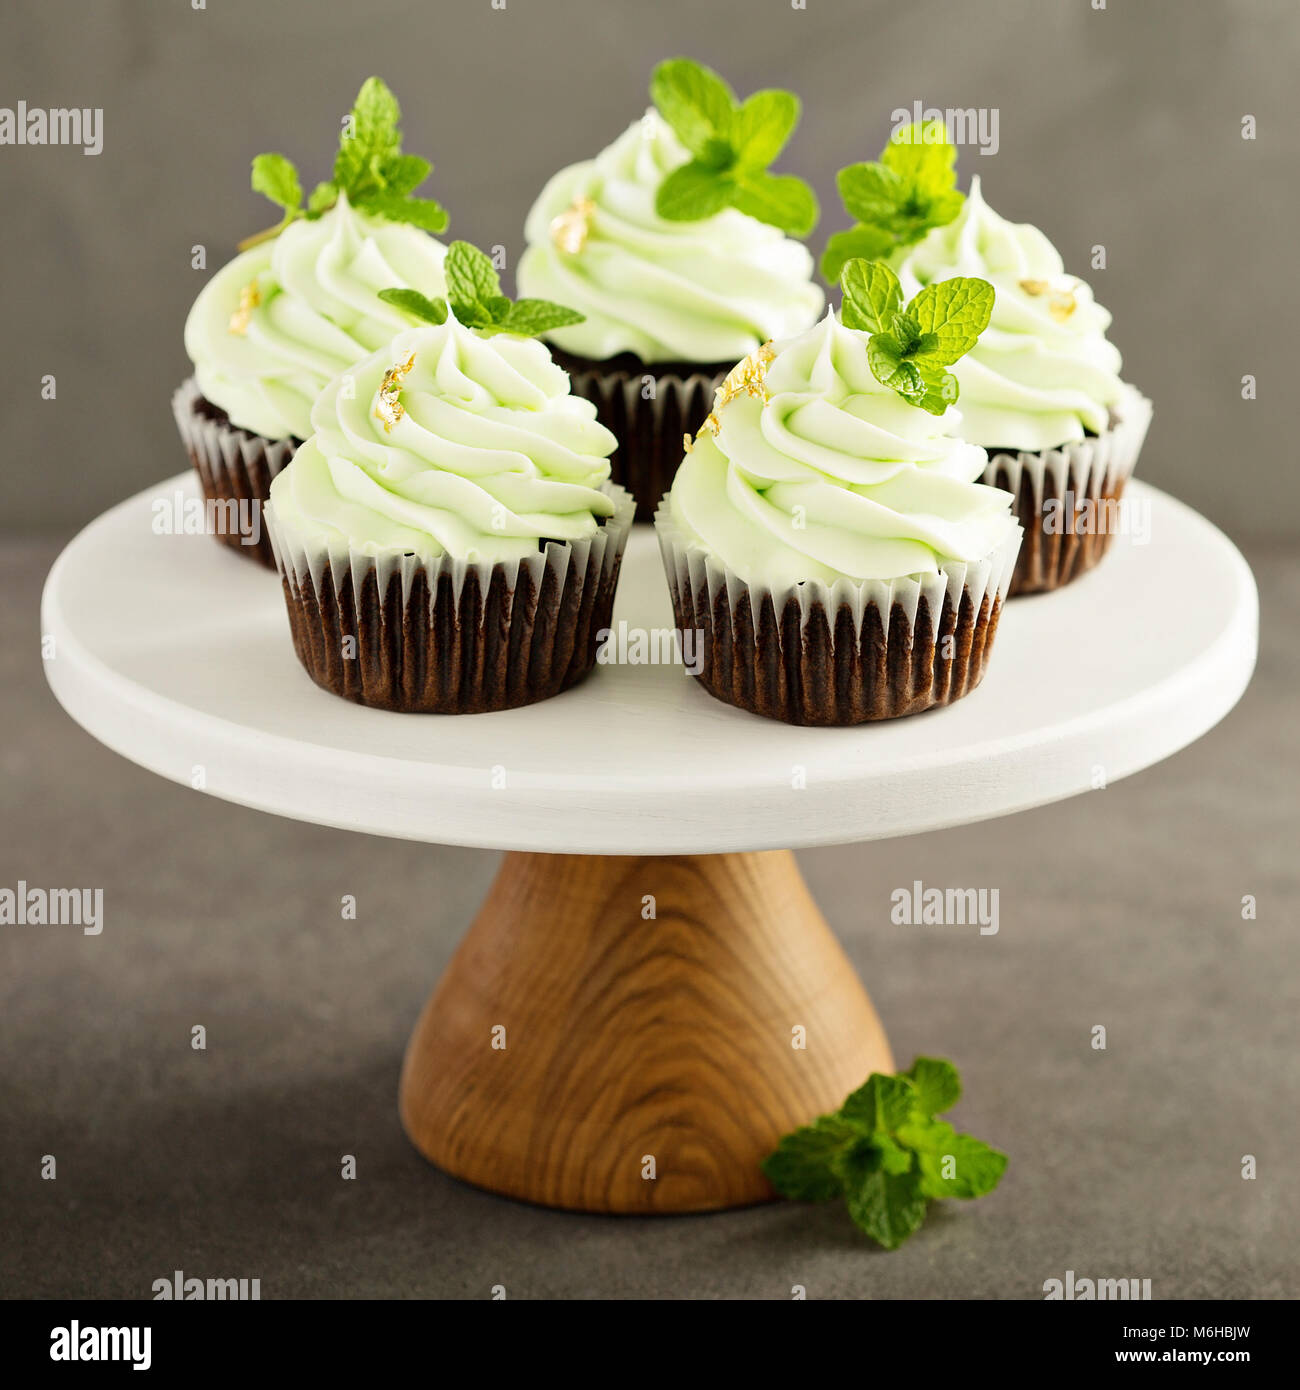 Chocolate mint cupcakes with green frosting - Stock Image